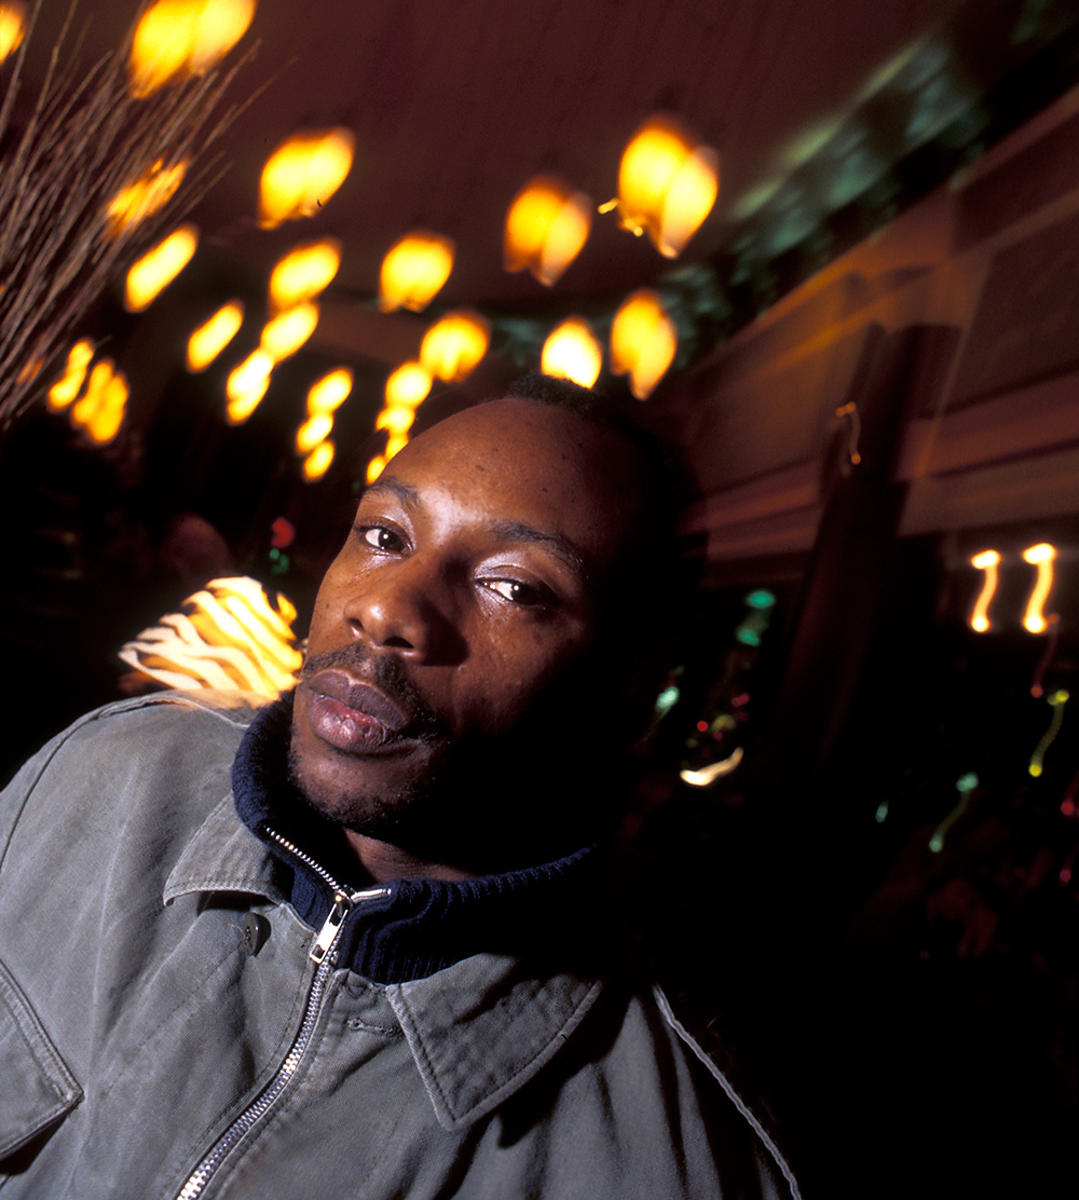 M.C Solaar, chanteur (Paris)